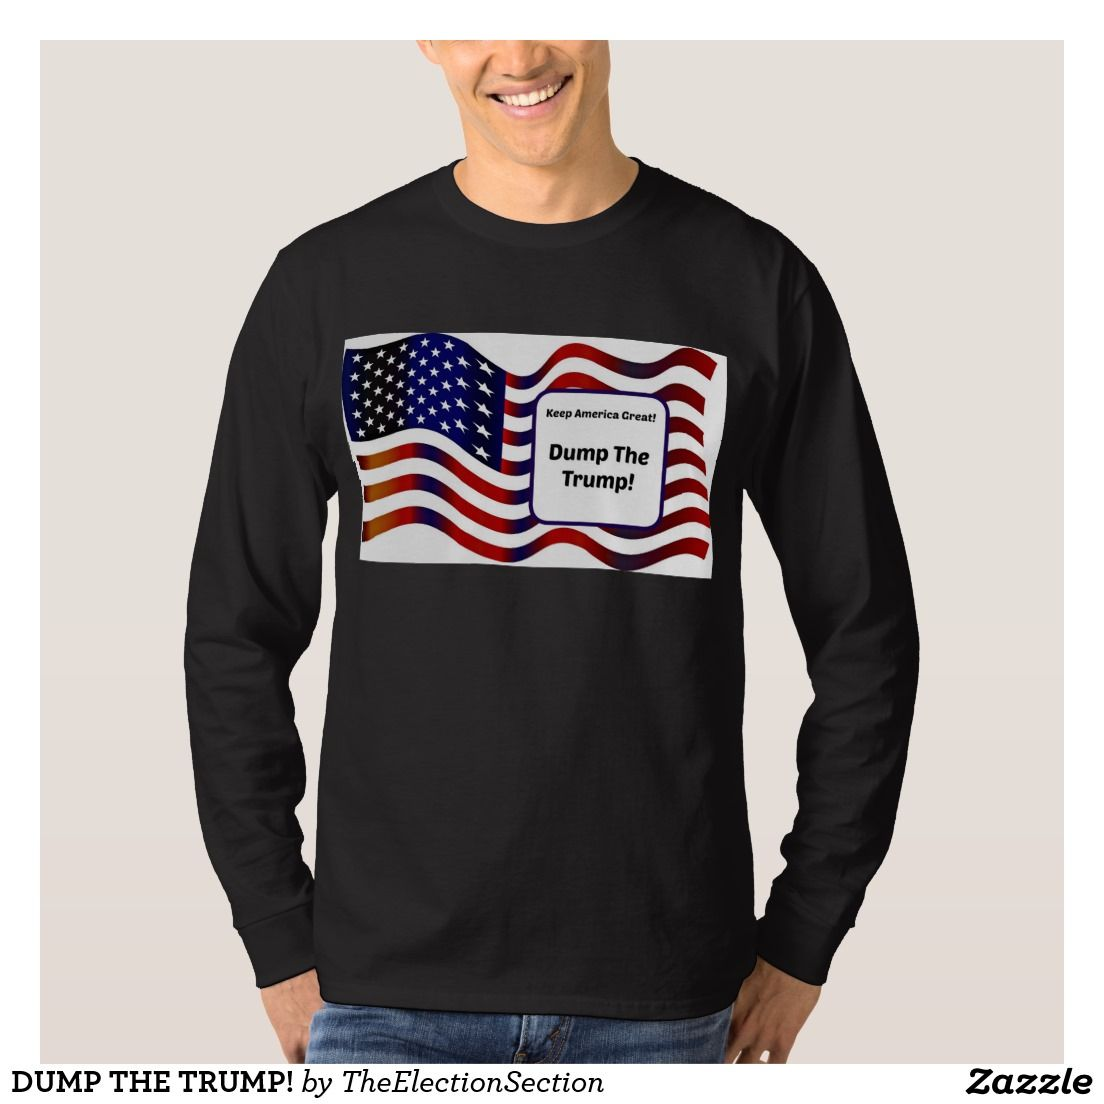 Your Custom Men's Basic Long Sleeve T-Shirt